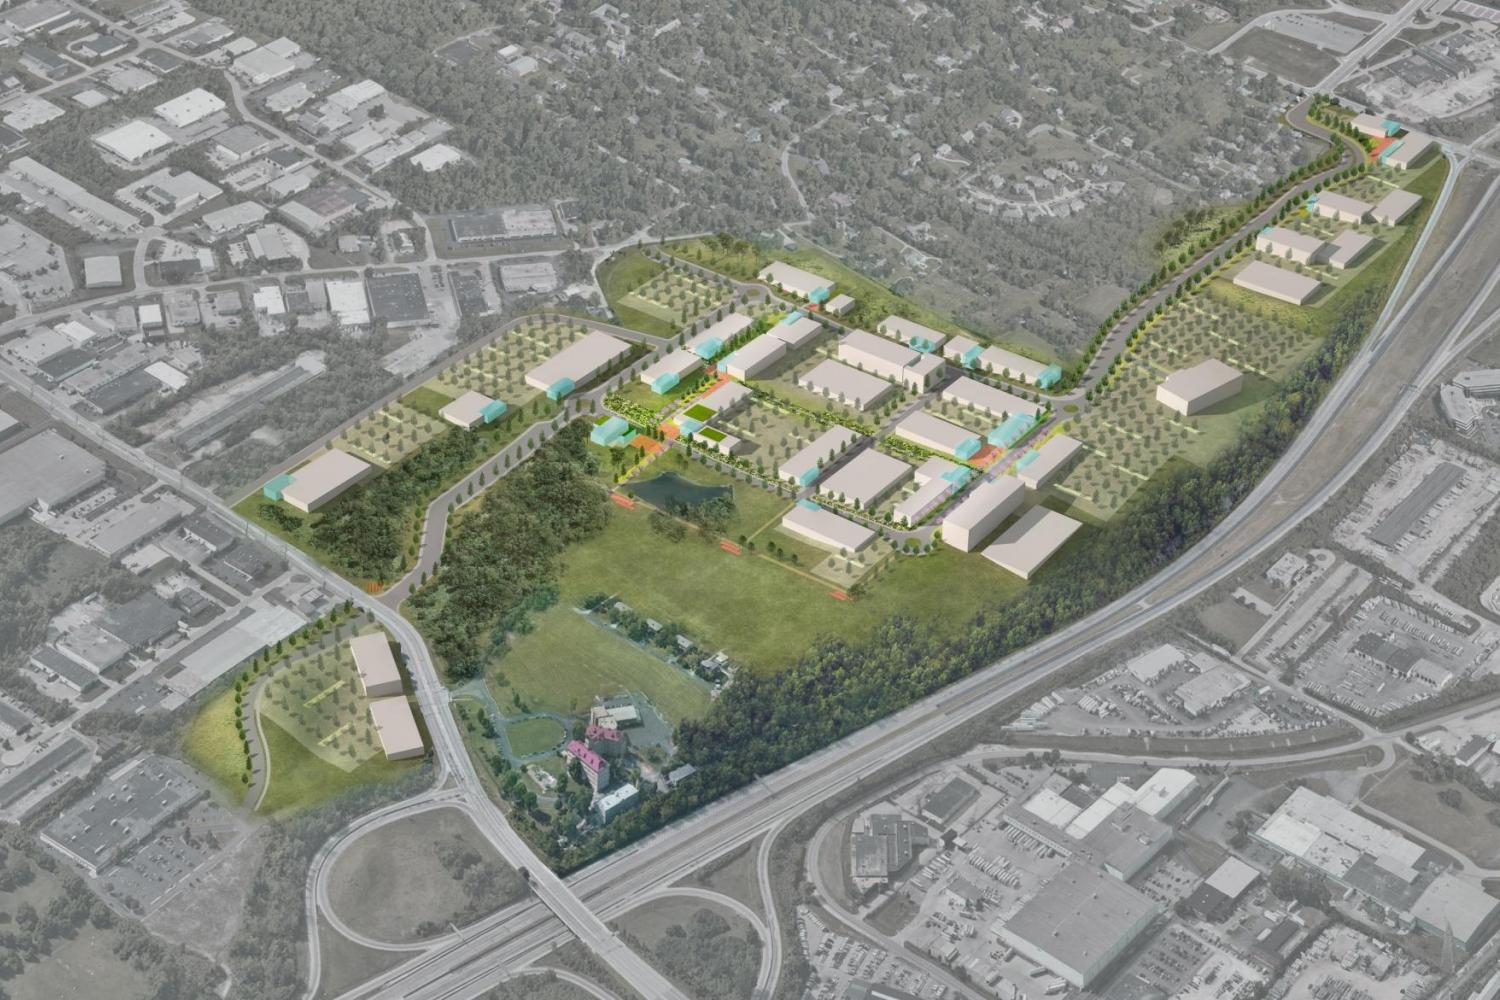 AeroHub Innovation District Master Plan